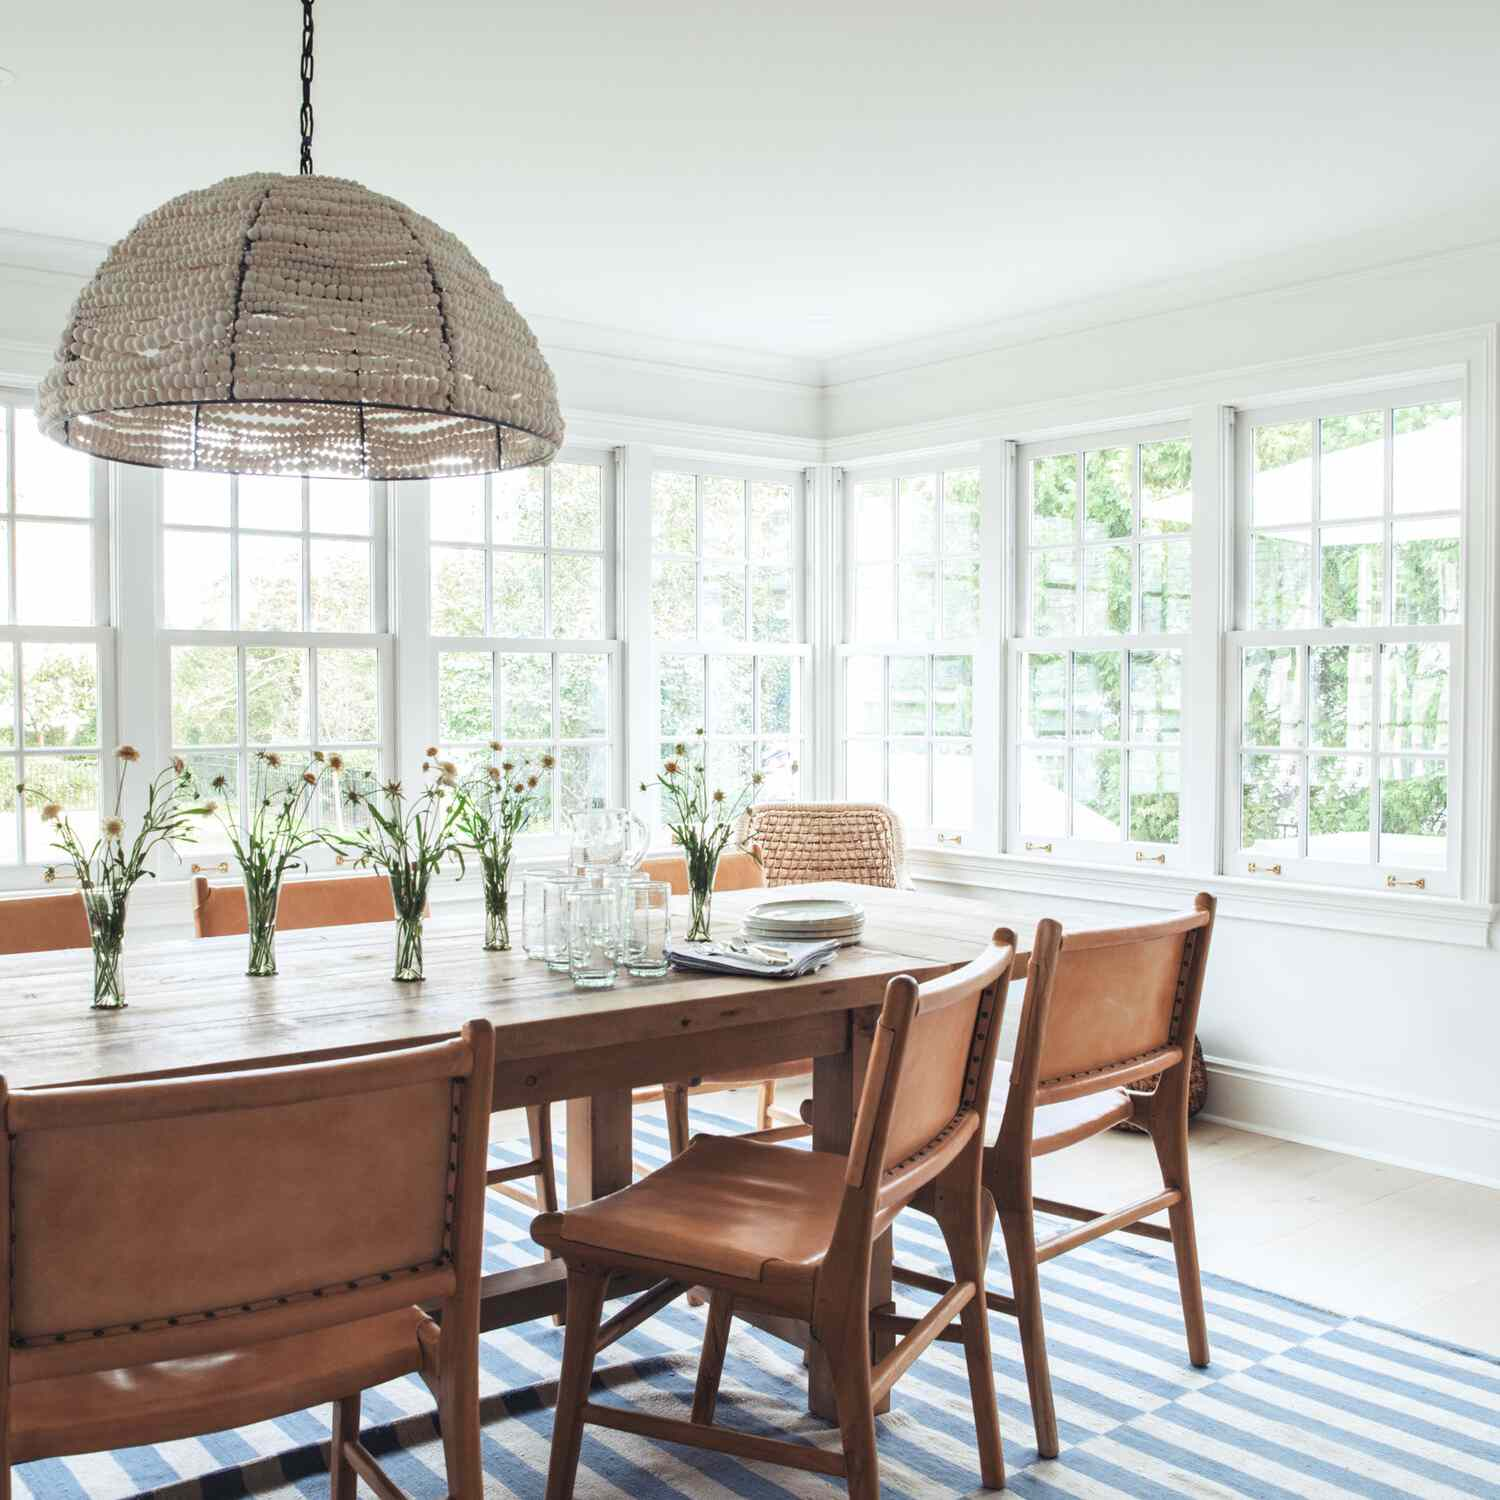 A dining room with sleek wooden furniture and a graphic blue and gray striped rug